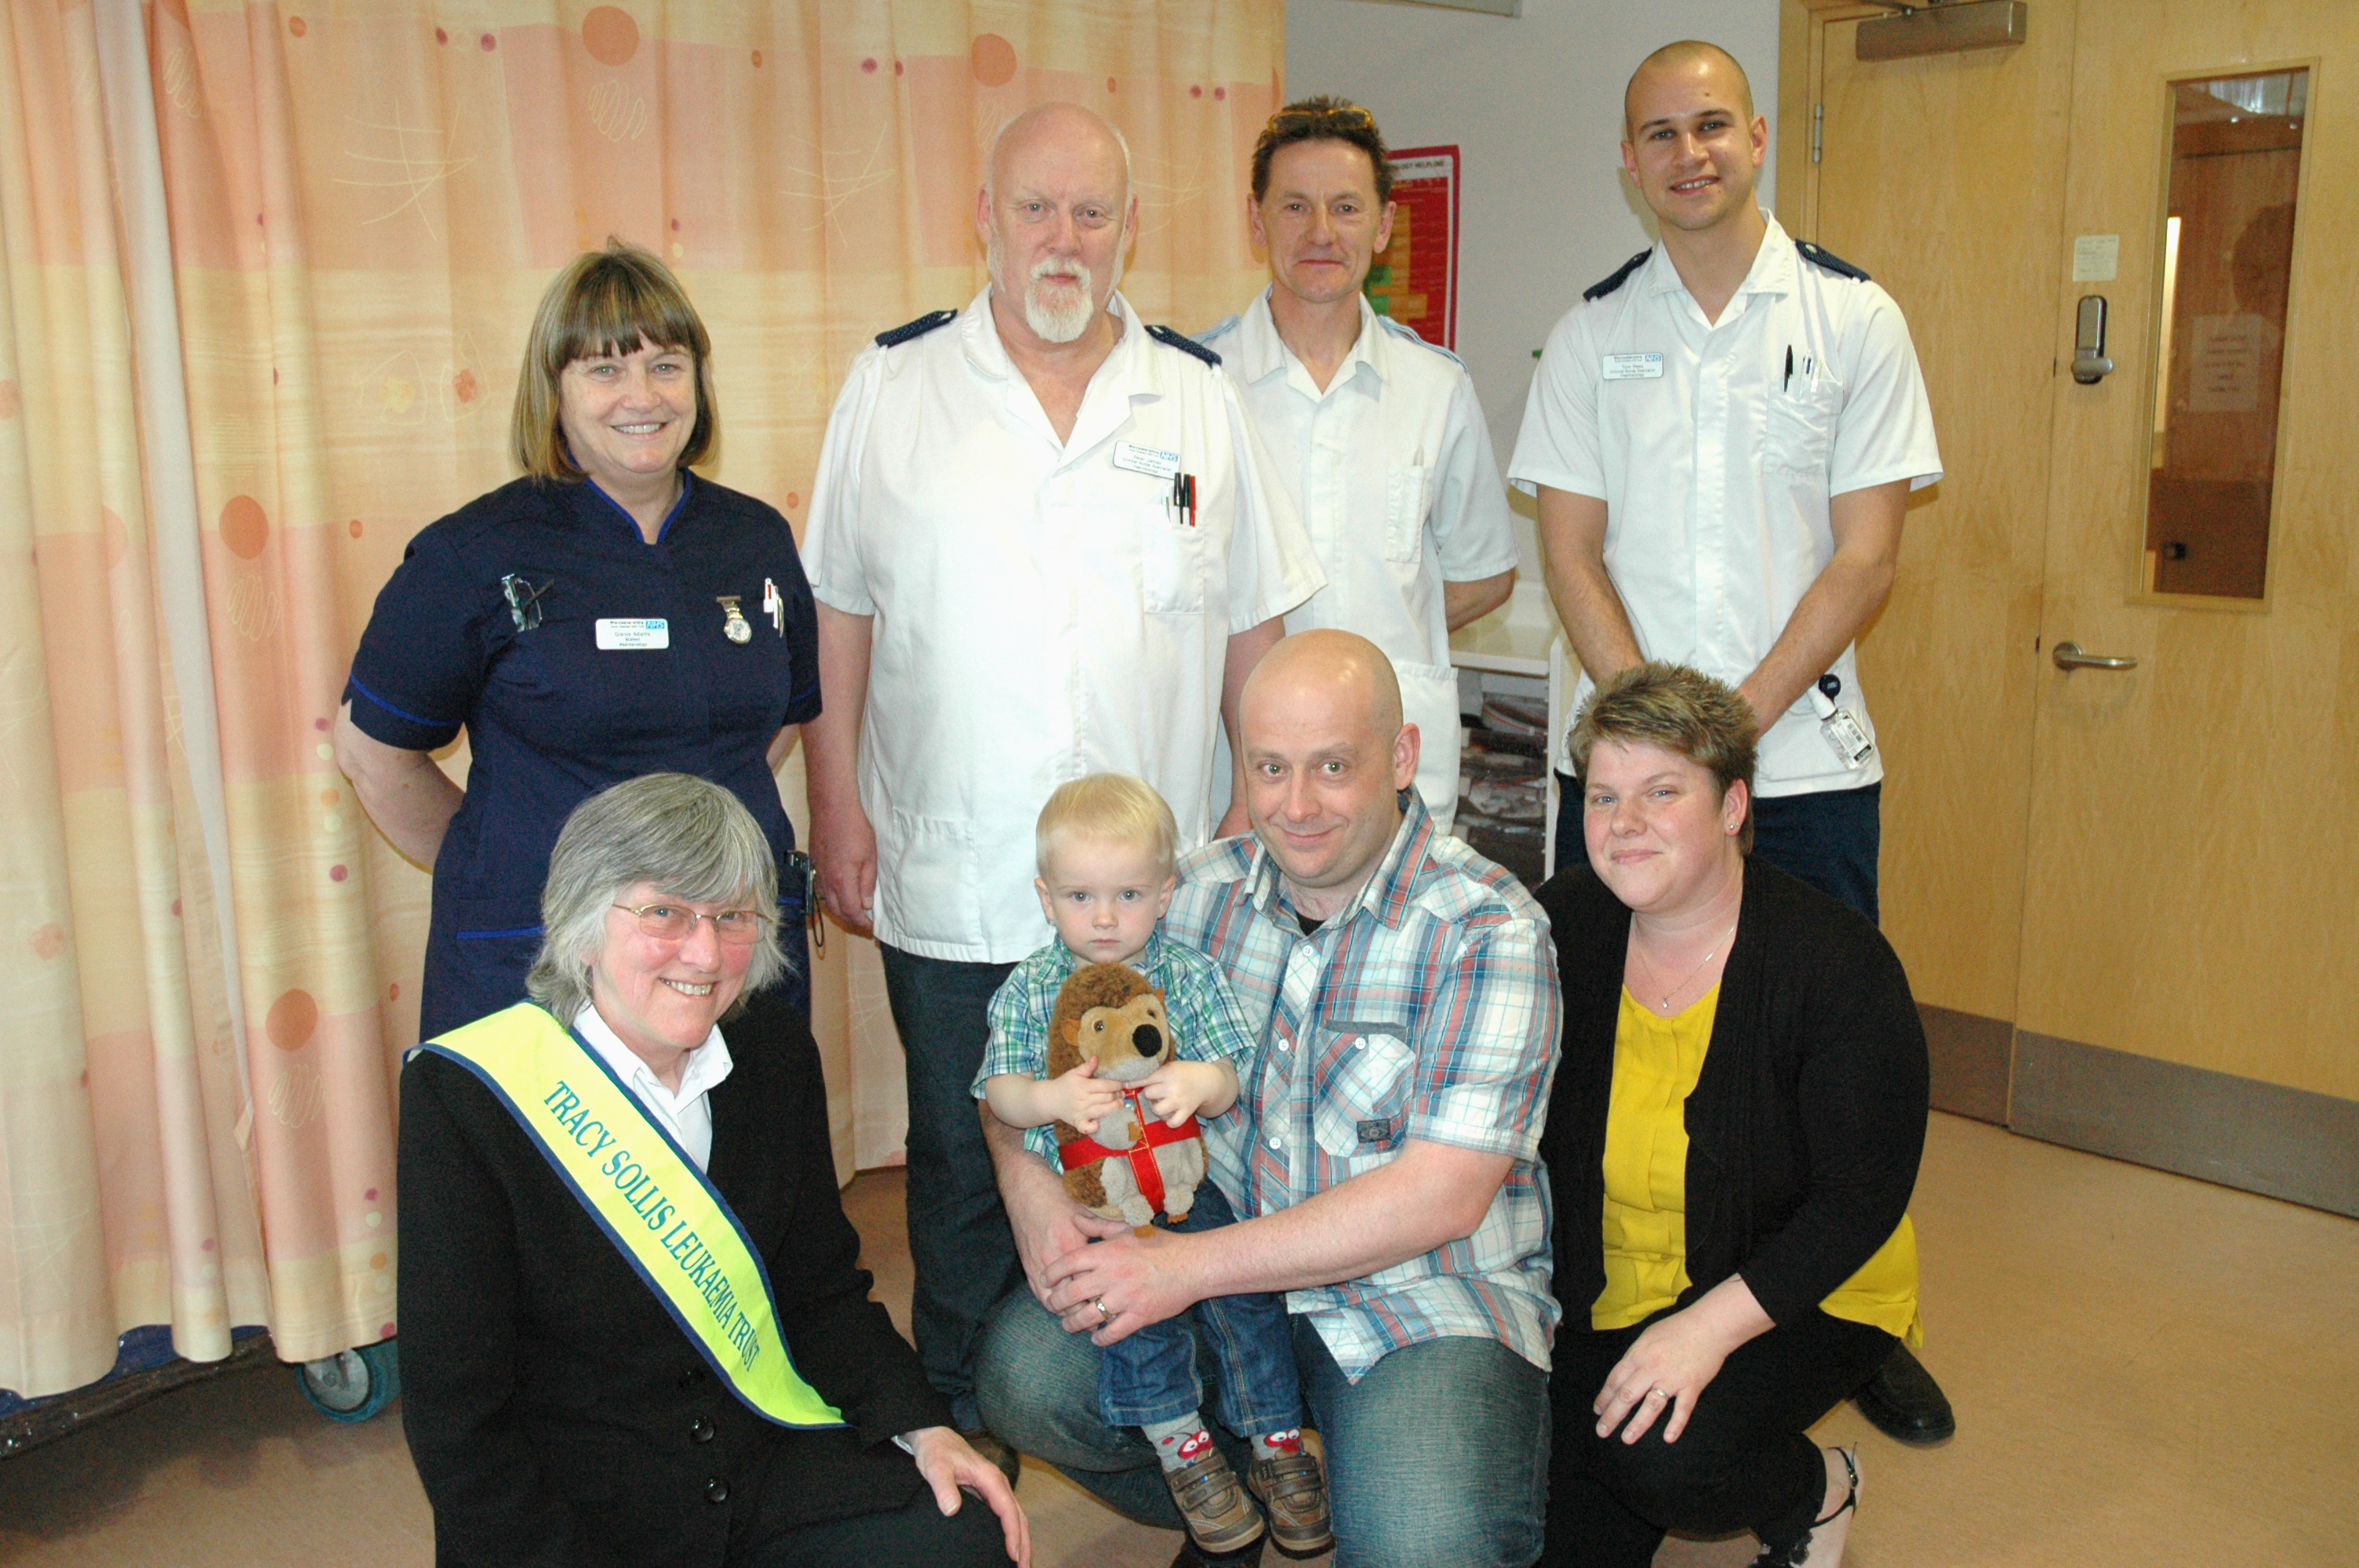 Tracy Sollis Trust donation - Glenis Adams, Pete James, Andy Wilce, Tom Rees, Sue Sollis, Antony, Donna and Oliver Fessey (1)